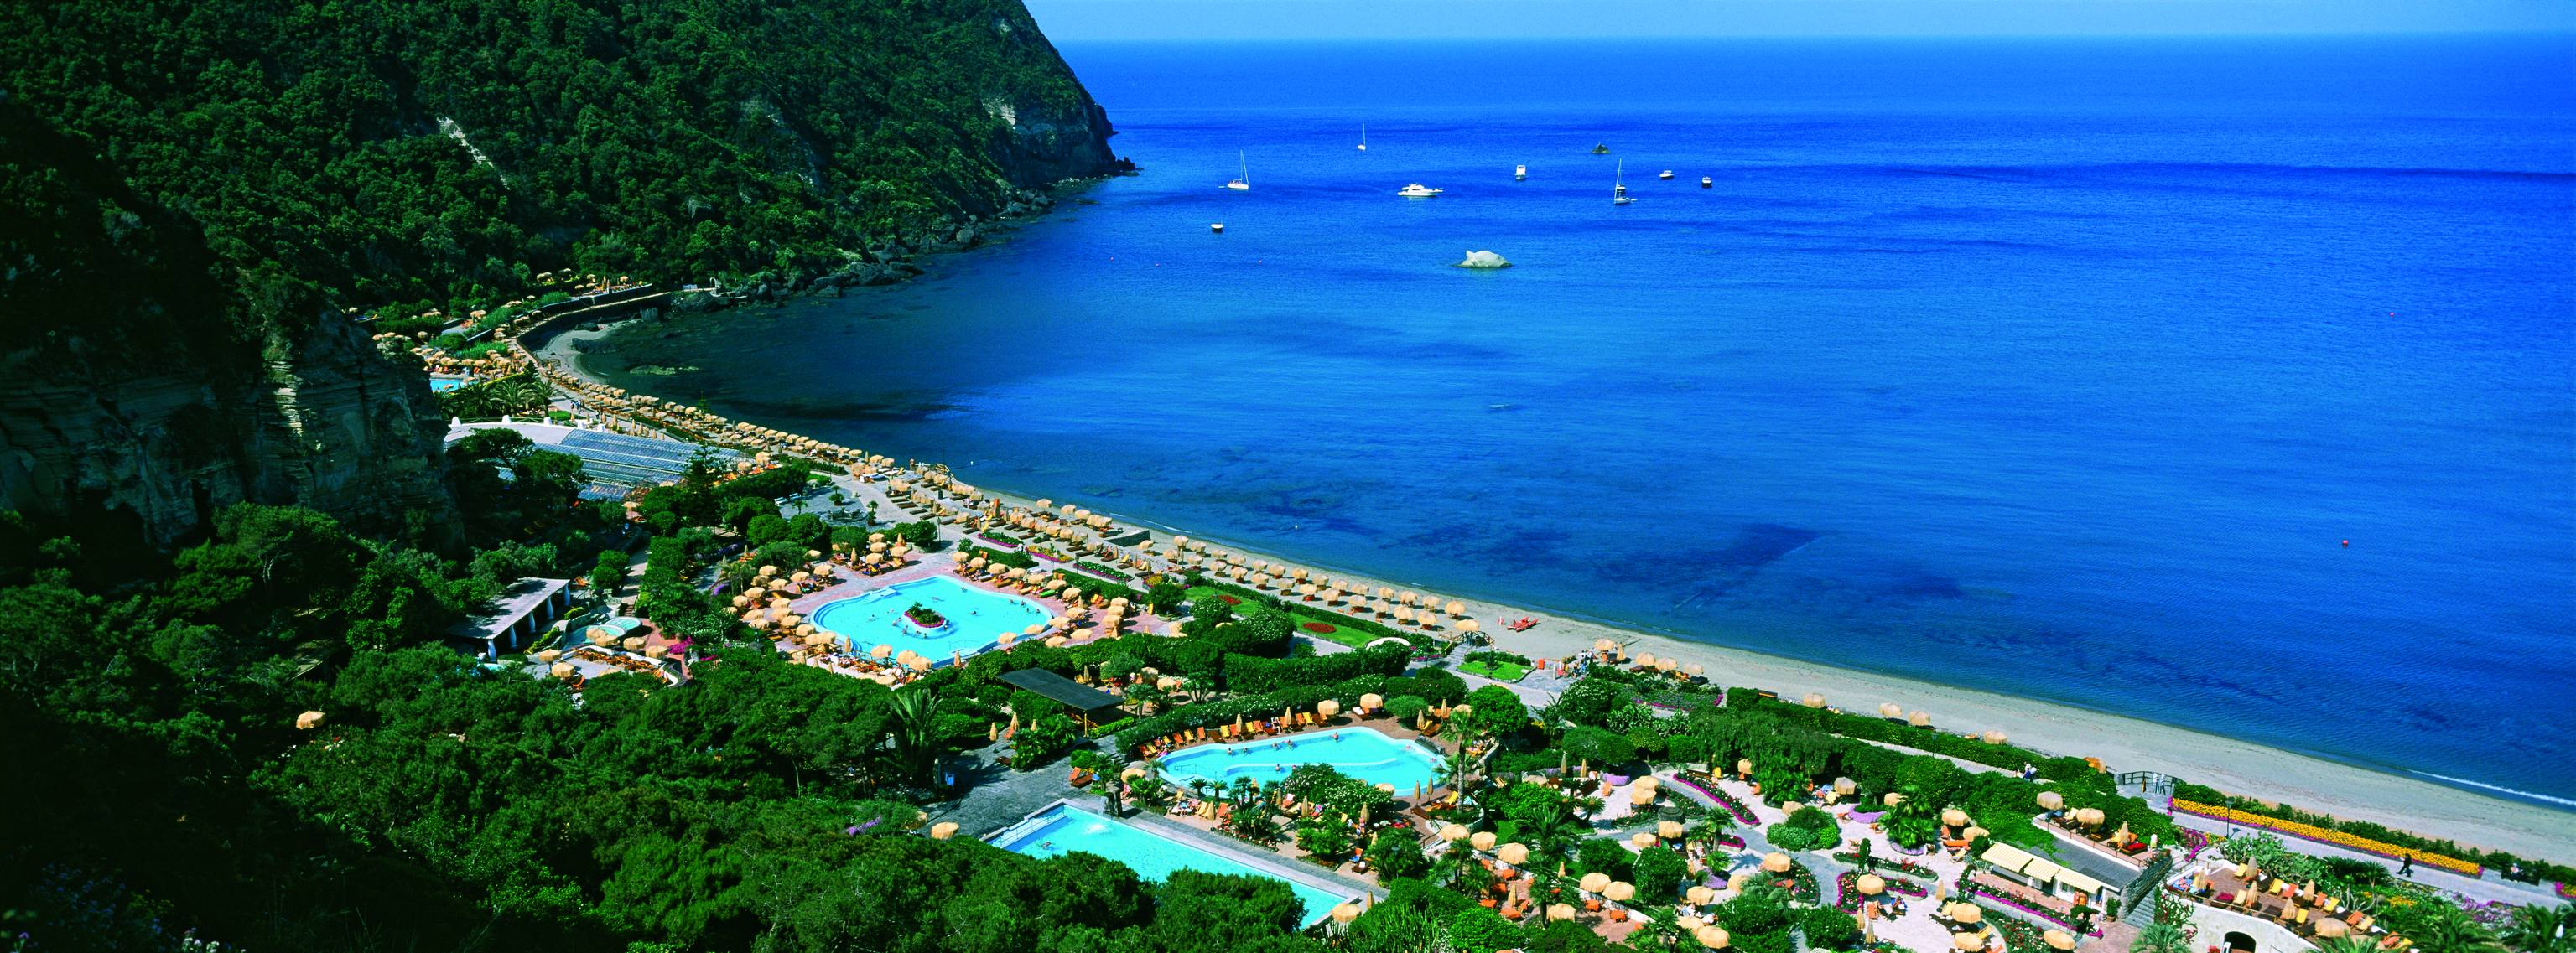 Best thermal baths in italy for relaxing holidays for Immagini di piccoli giardini